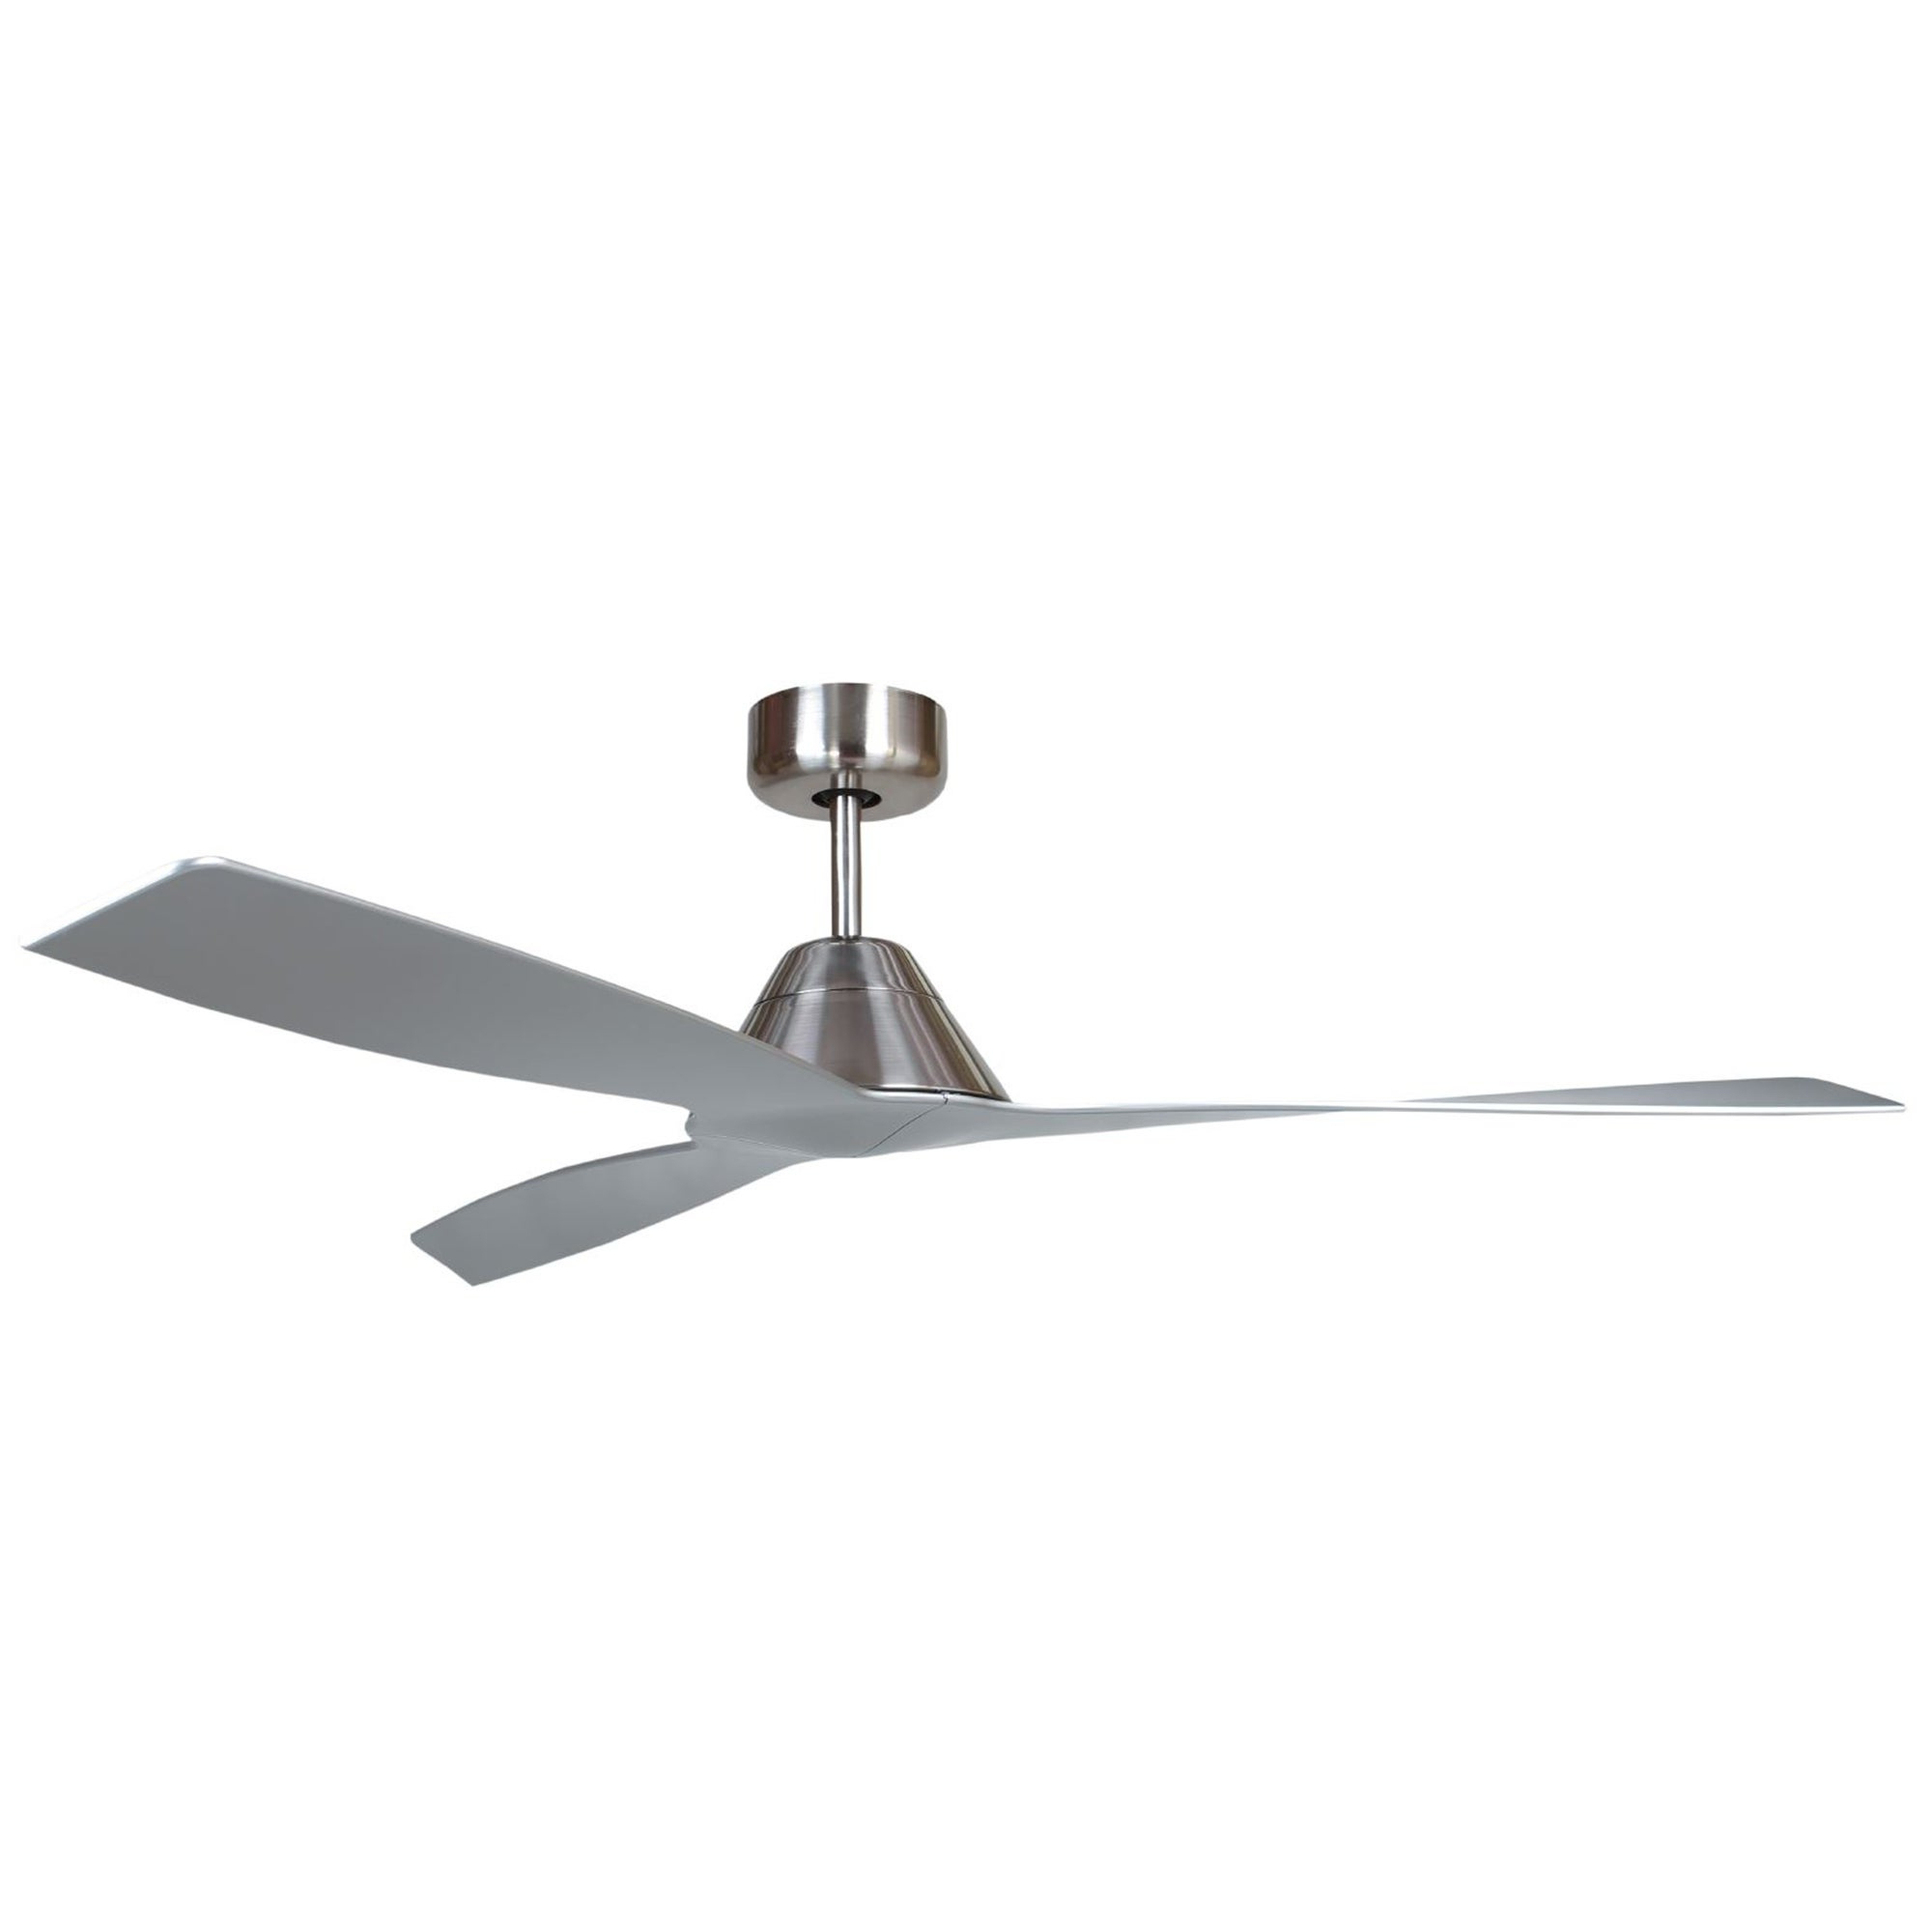 Bali1 Bn 3 Blade Ceiling Fan In Brushed Nickel Finish Pertaining To Well Known Embrace 3 Blade Ceiling Fans (View 14 of 20)